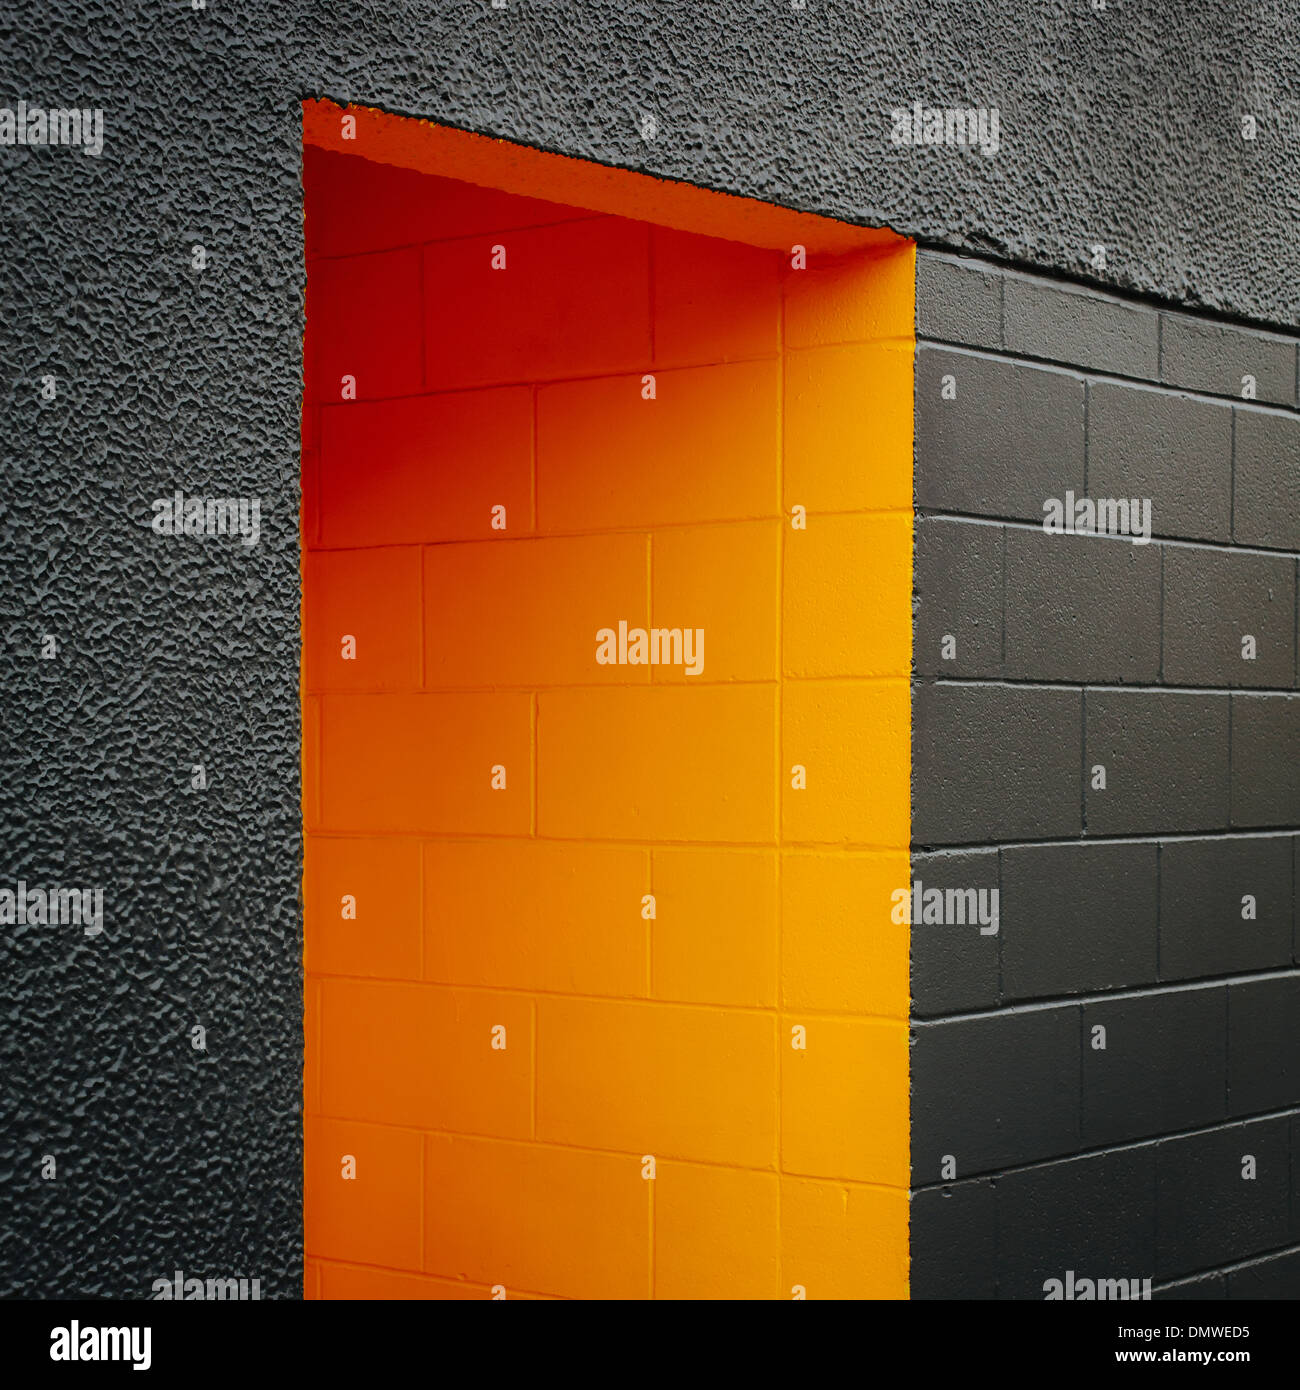 A doorway recess painted orange in a grey block concrete wall. - Stock Image